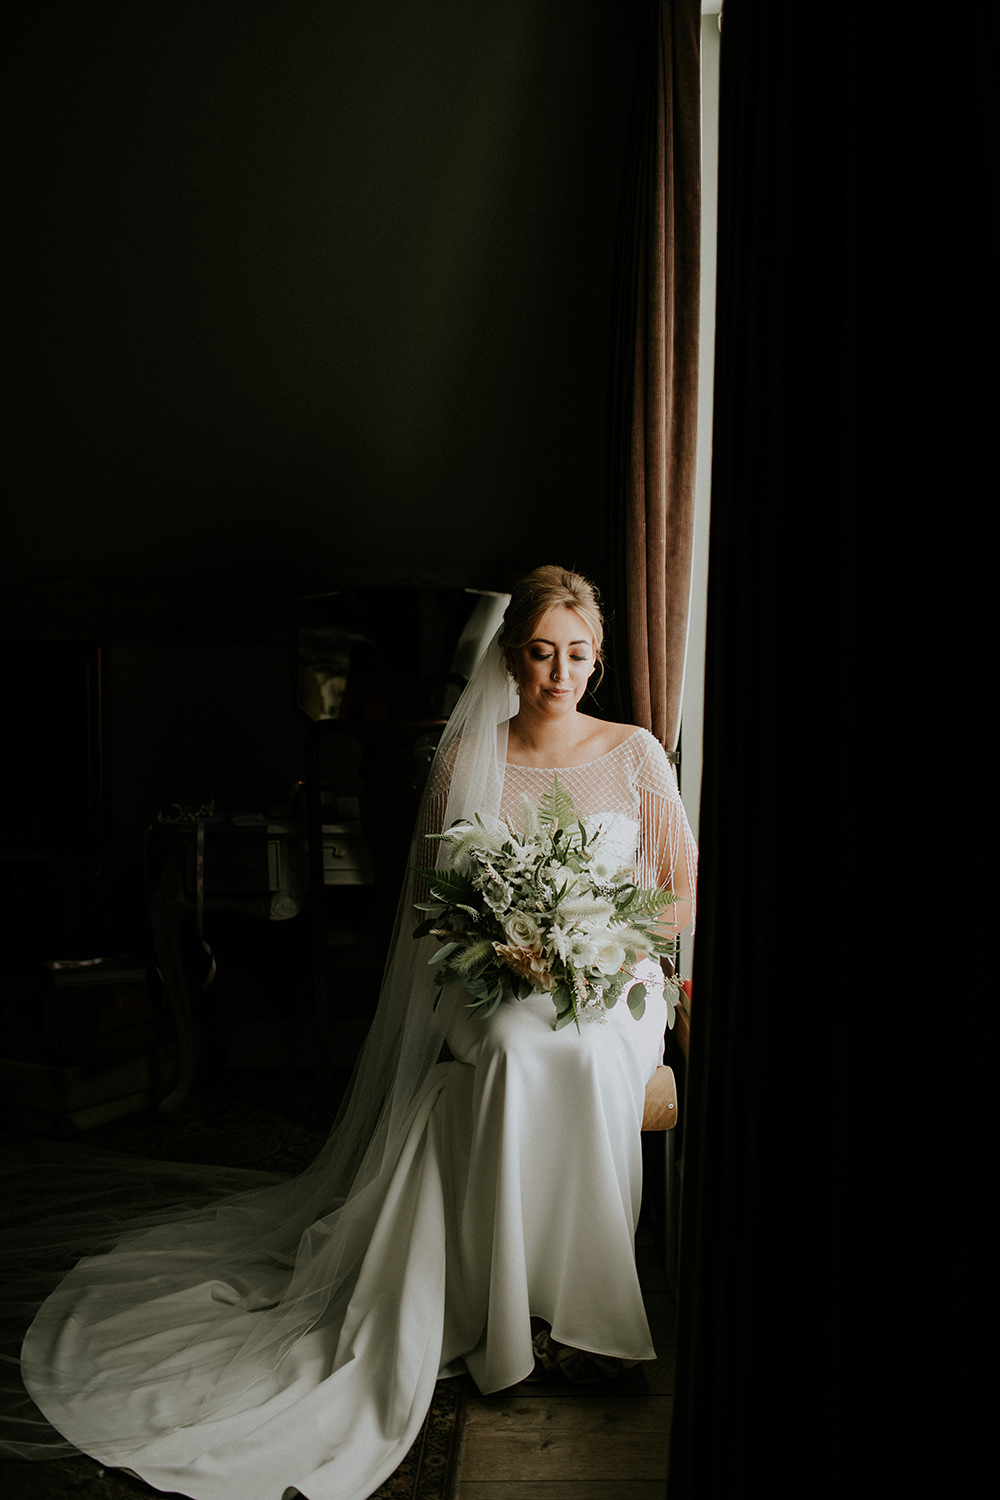 Bride Bridal Dress Gown Sottero and Midgley Tassel Sleeves Back Beaded Fringed Train Bell Ticehurst Wedding Irene Yap Photography